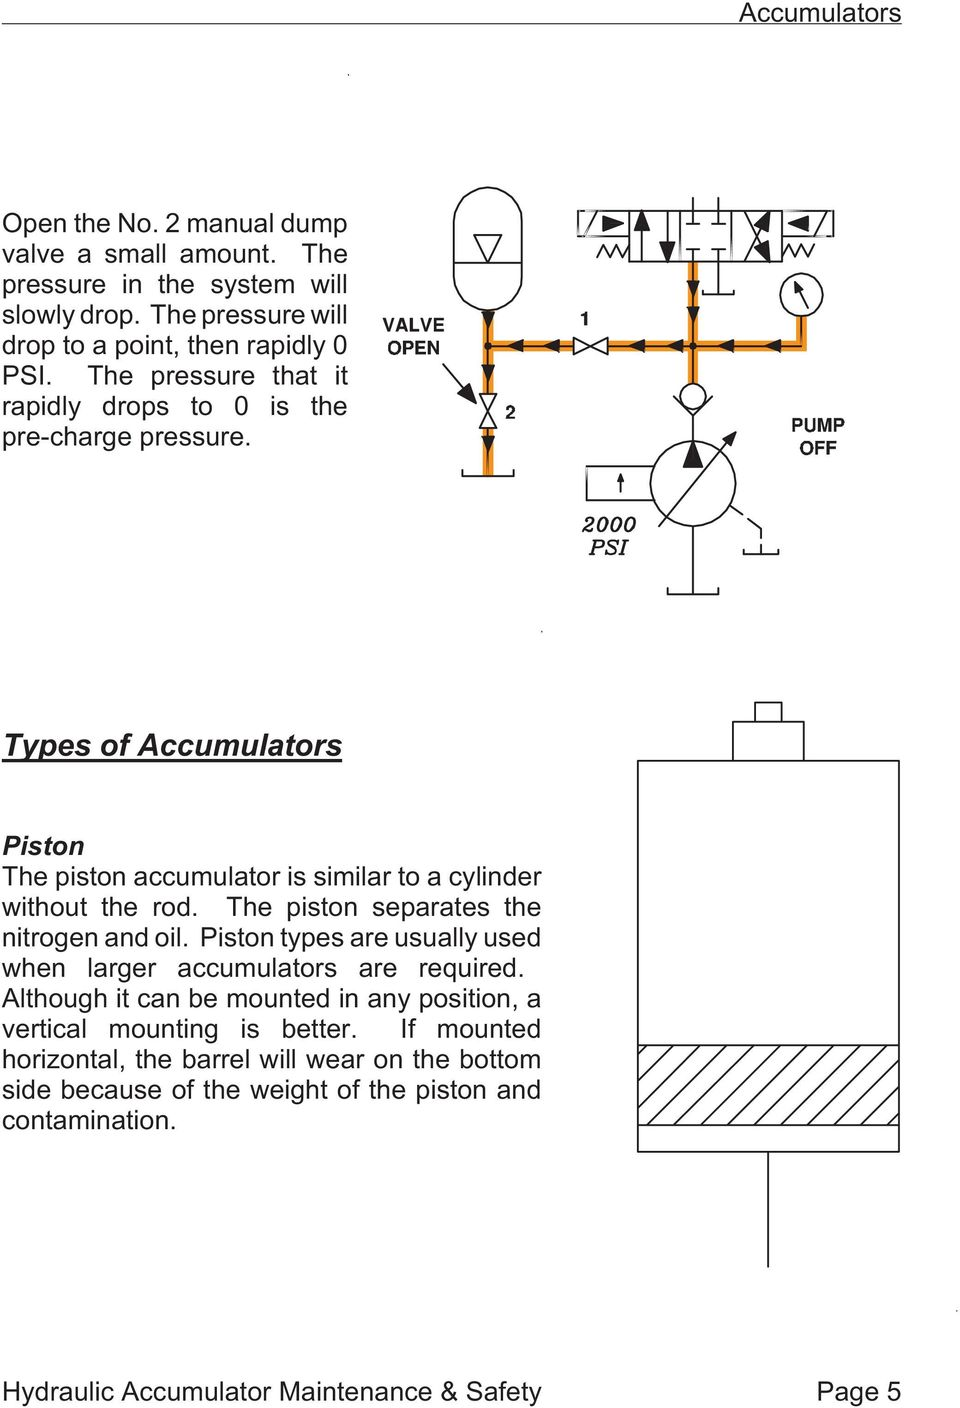 What You Don T Know About Accumulators Can Kill Pdf Amd A Diagram Of Engine Piston The Separates Nitrogen And Oil Types Are Usually Used When Larger